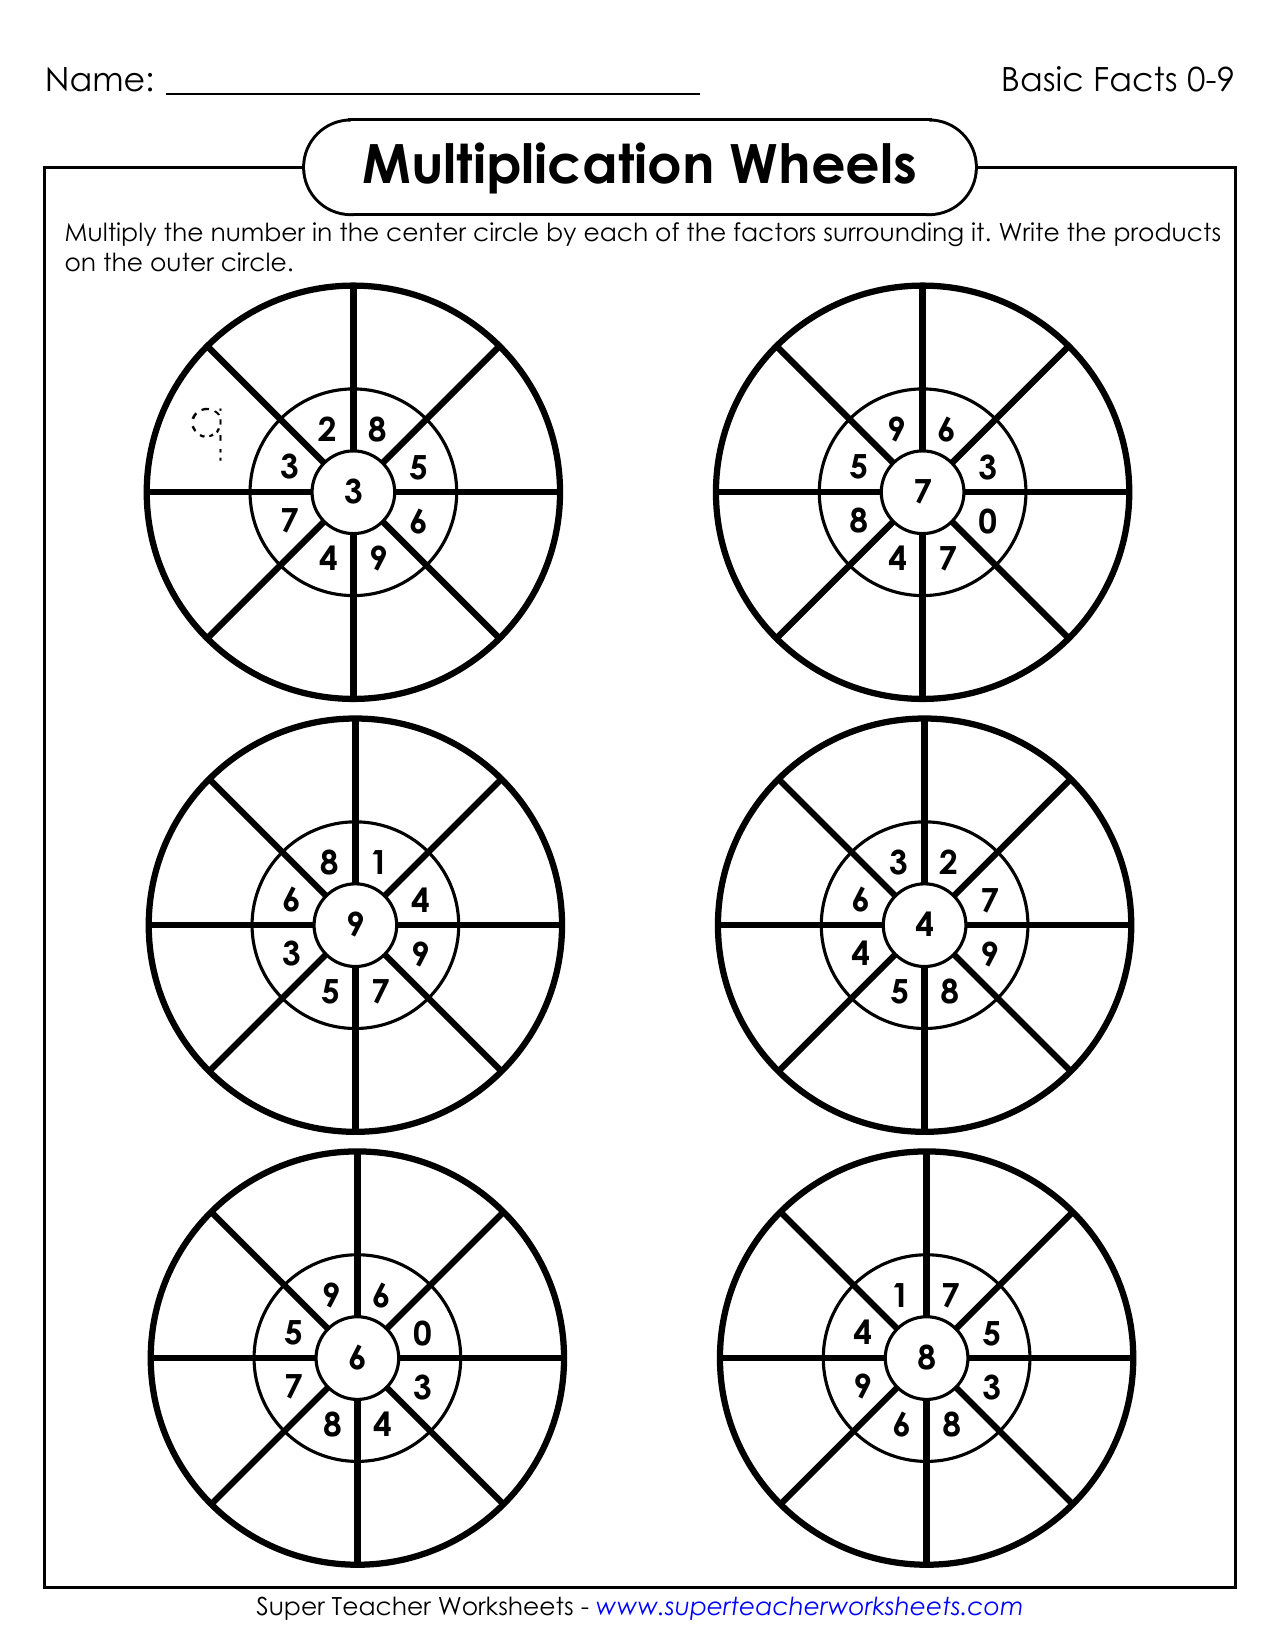 Printable Multiplication Wheels